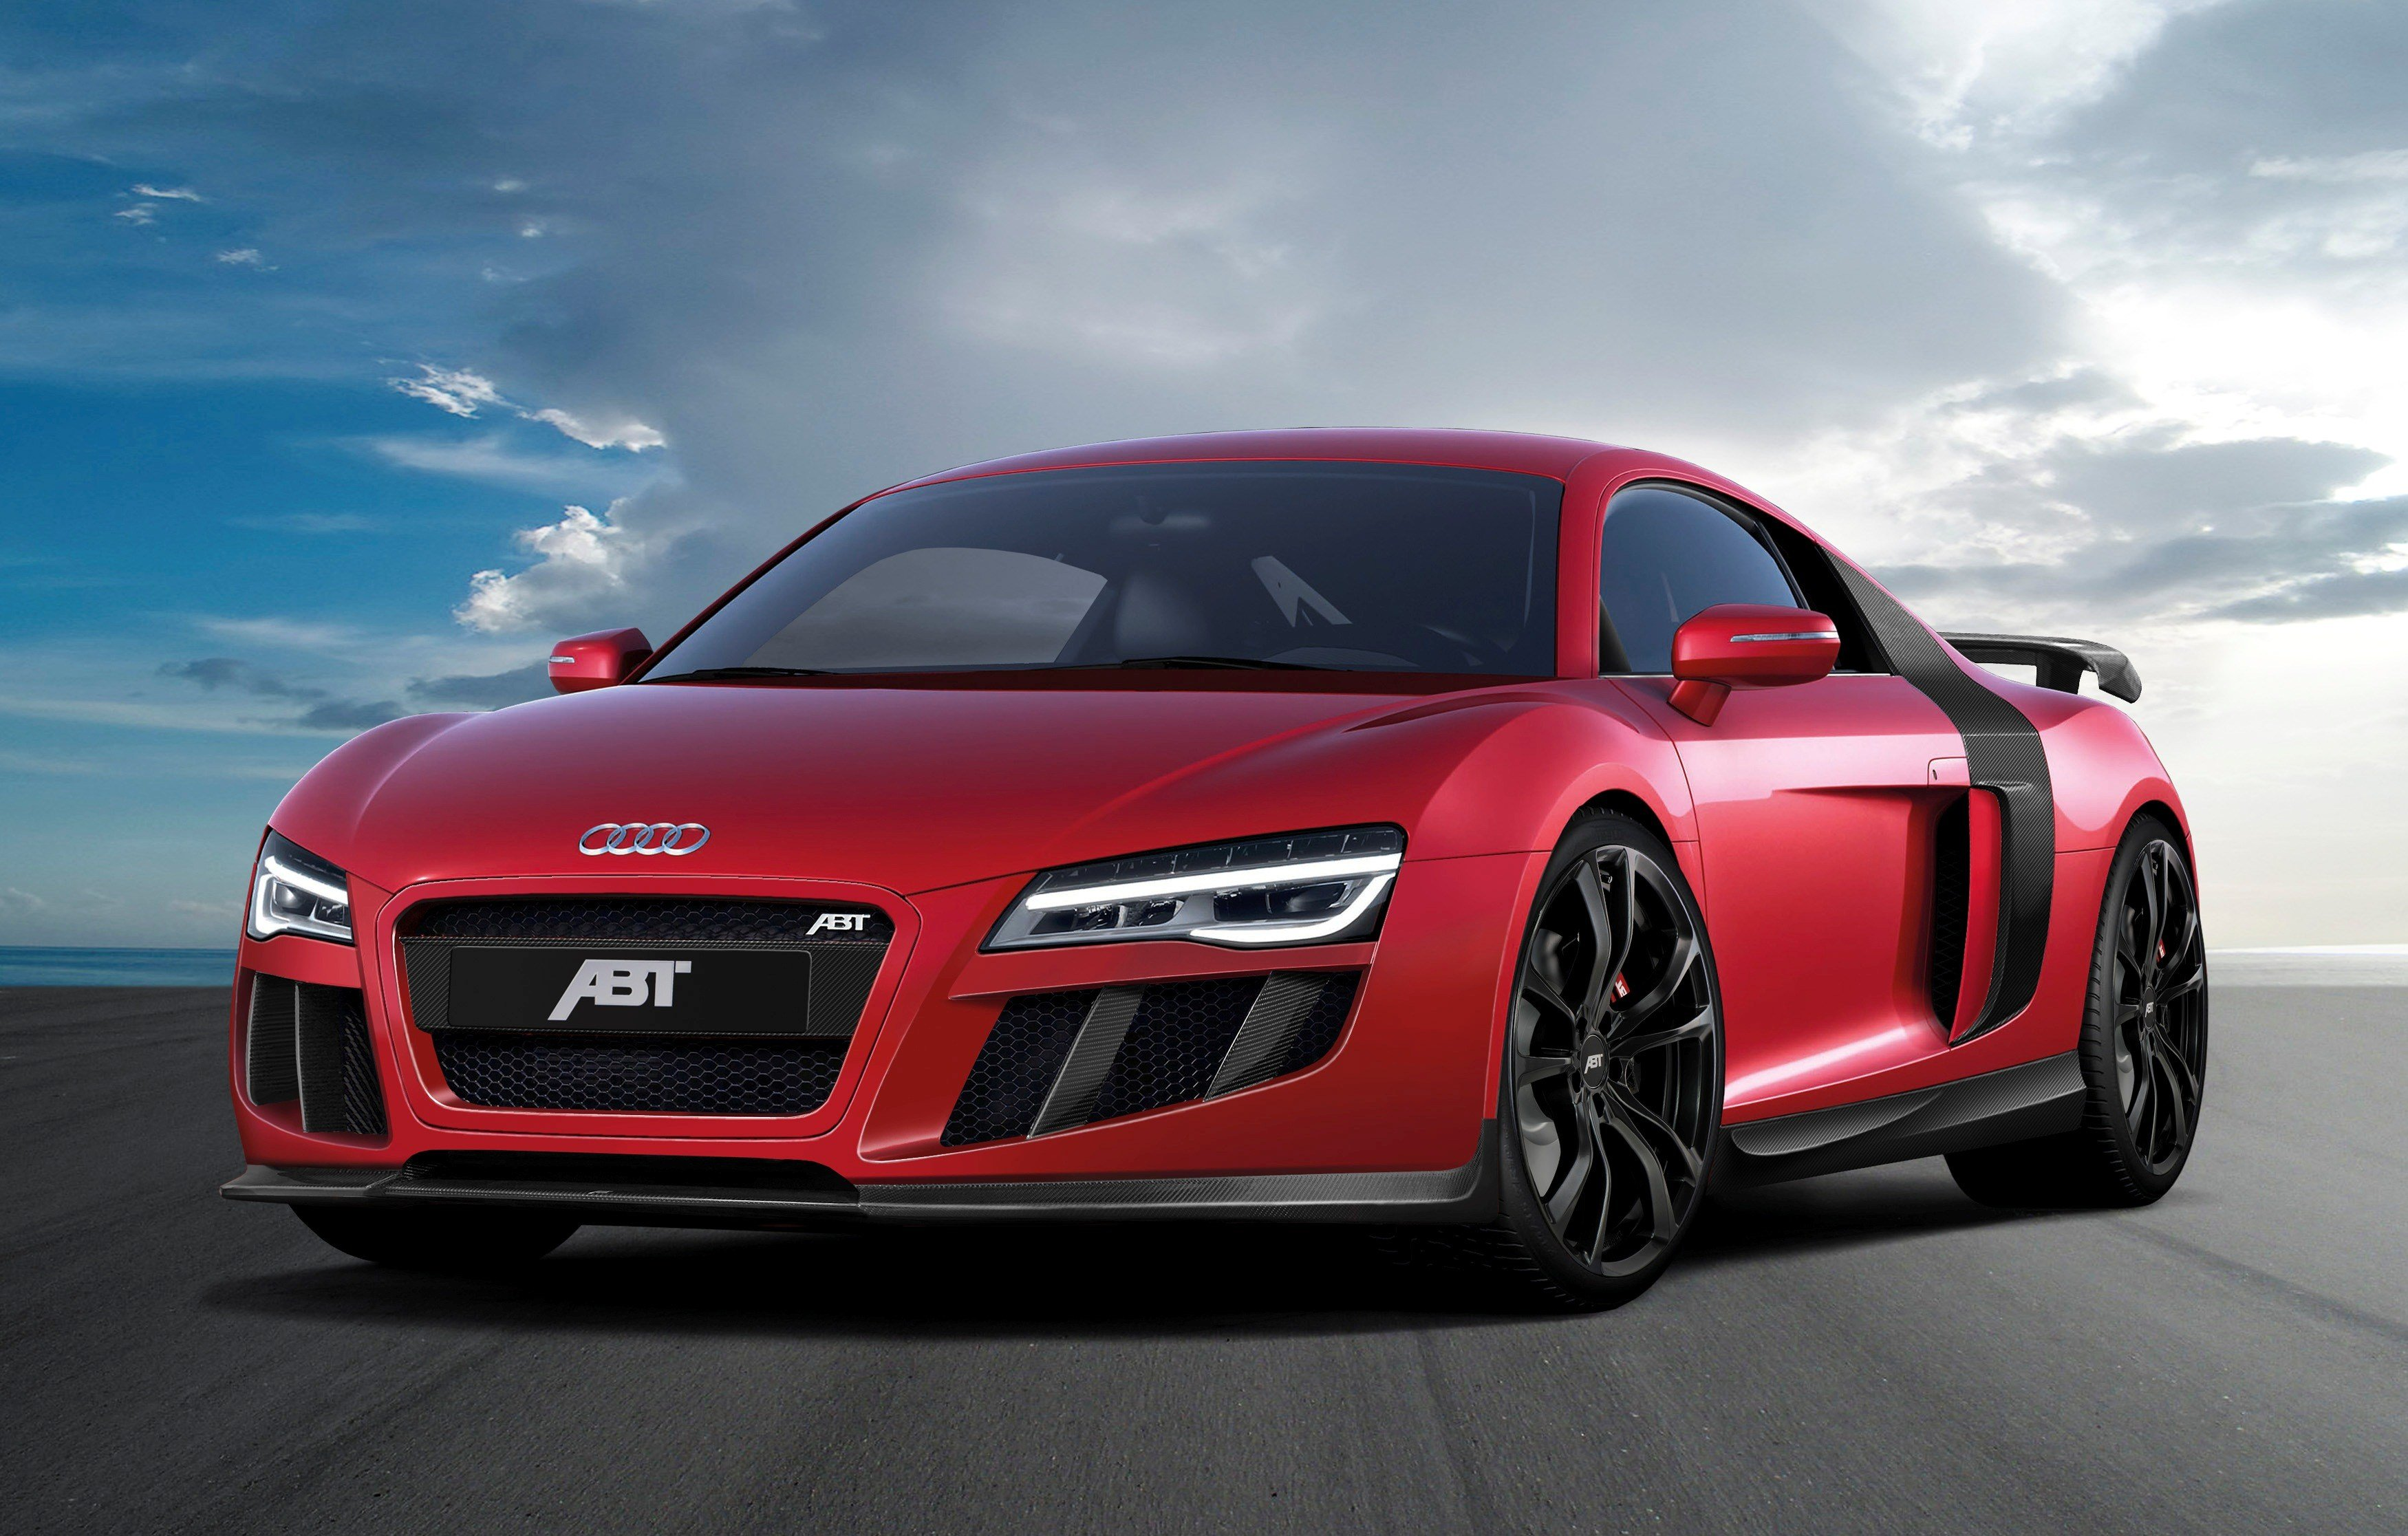 Latest 2013 Audi R8 V10 By Abt Sportsline Review Top Speed Free Download